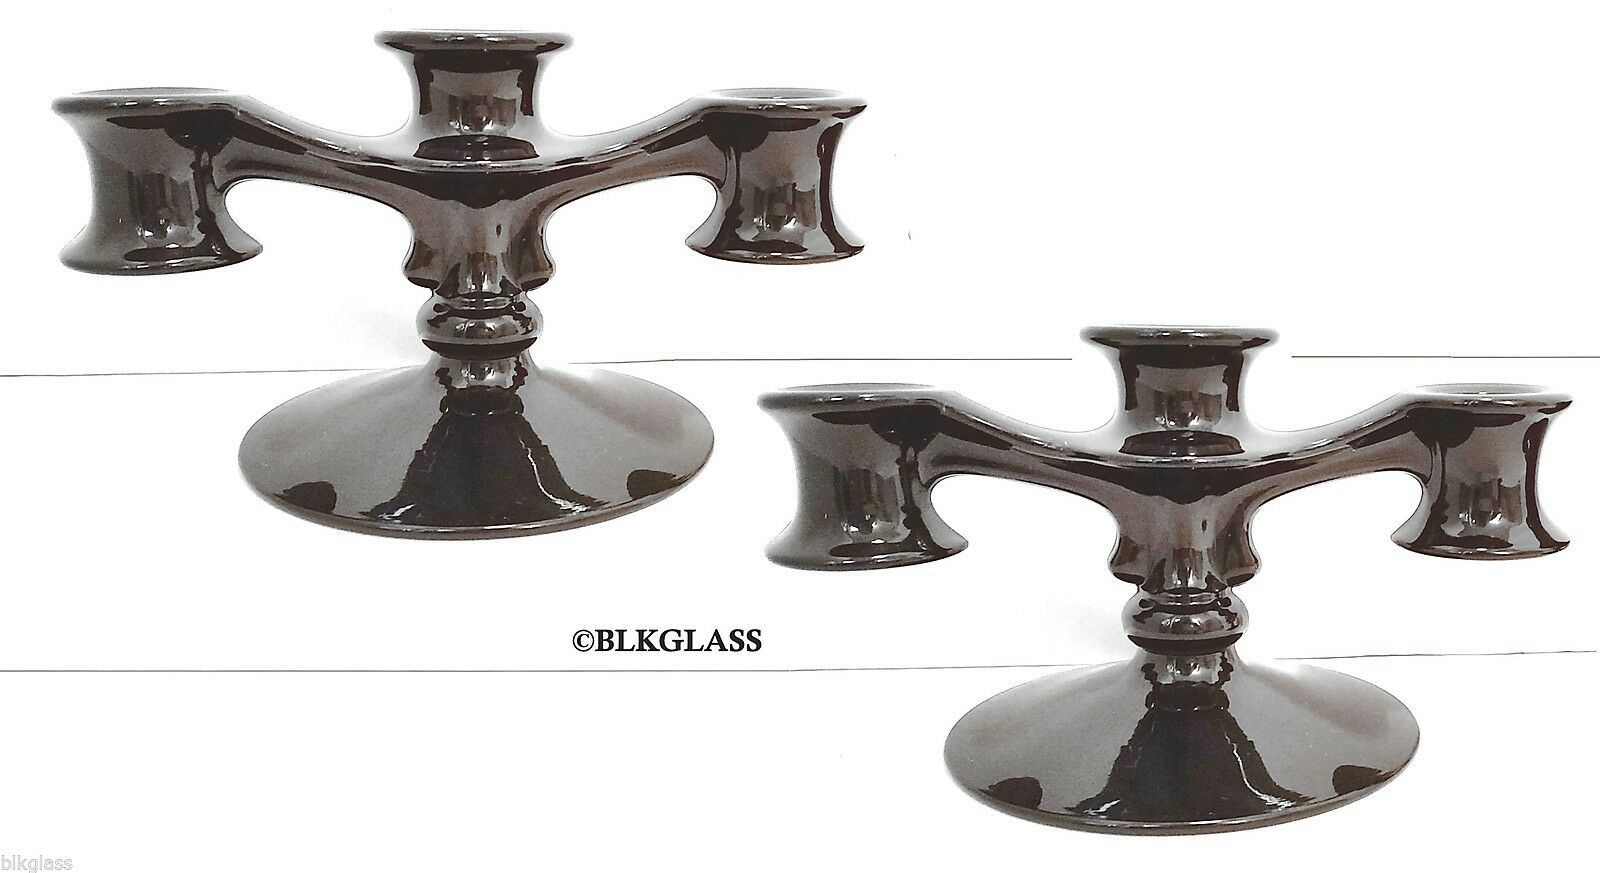 Fostoria Black Glass Pair  Trindle Candlesticks 3 Light Candle Holders Triple - $44.99